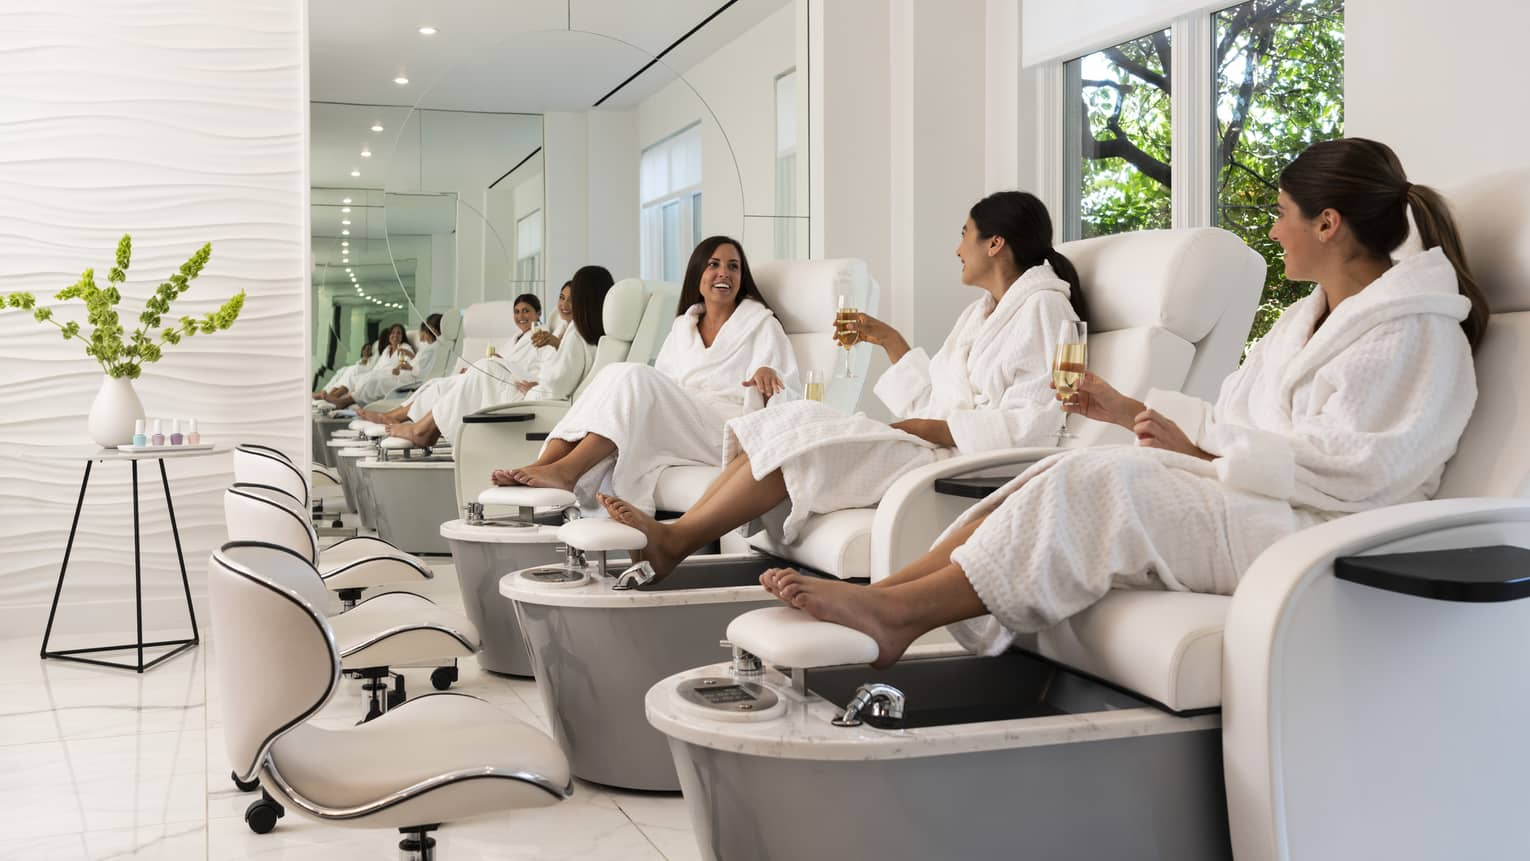 Three women wearing Four Seasons spa robes, sit on pedicure, massage chairs and chat amongst themselves